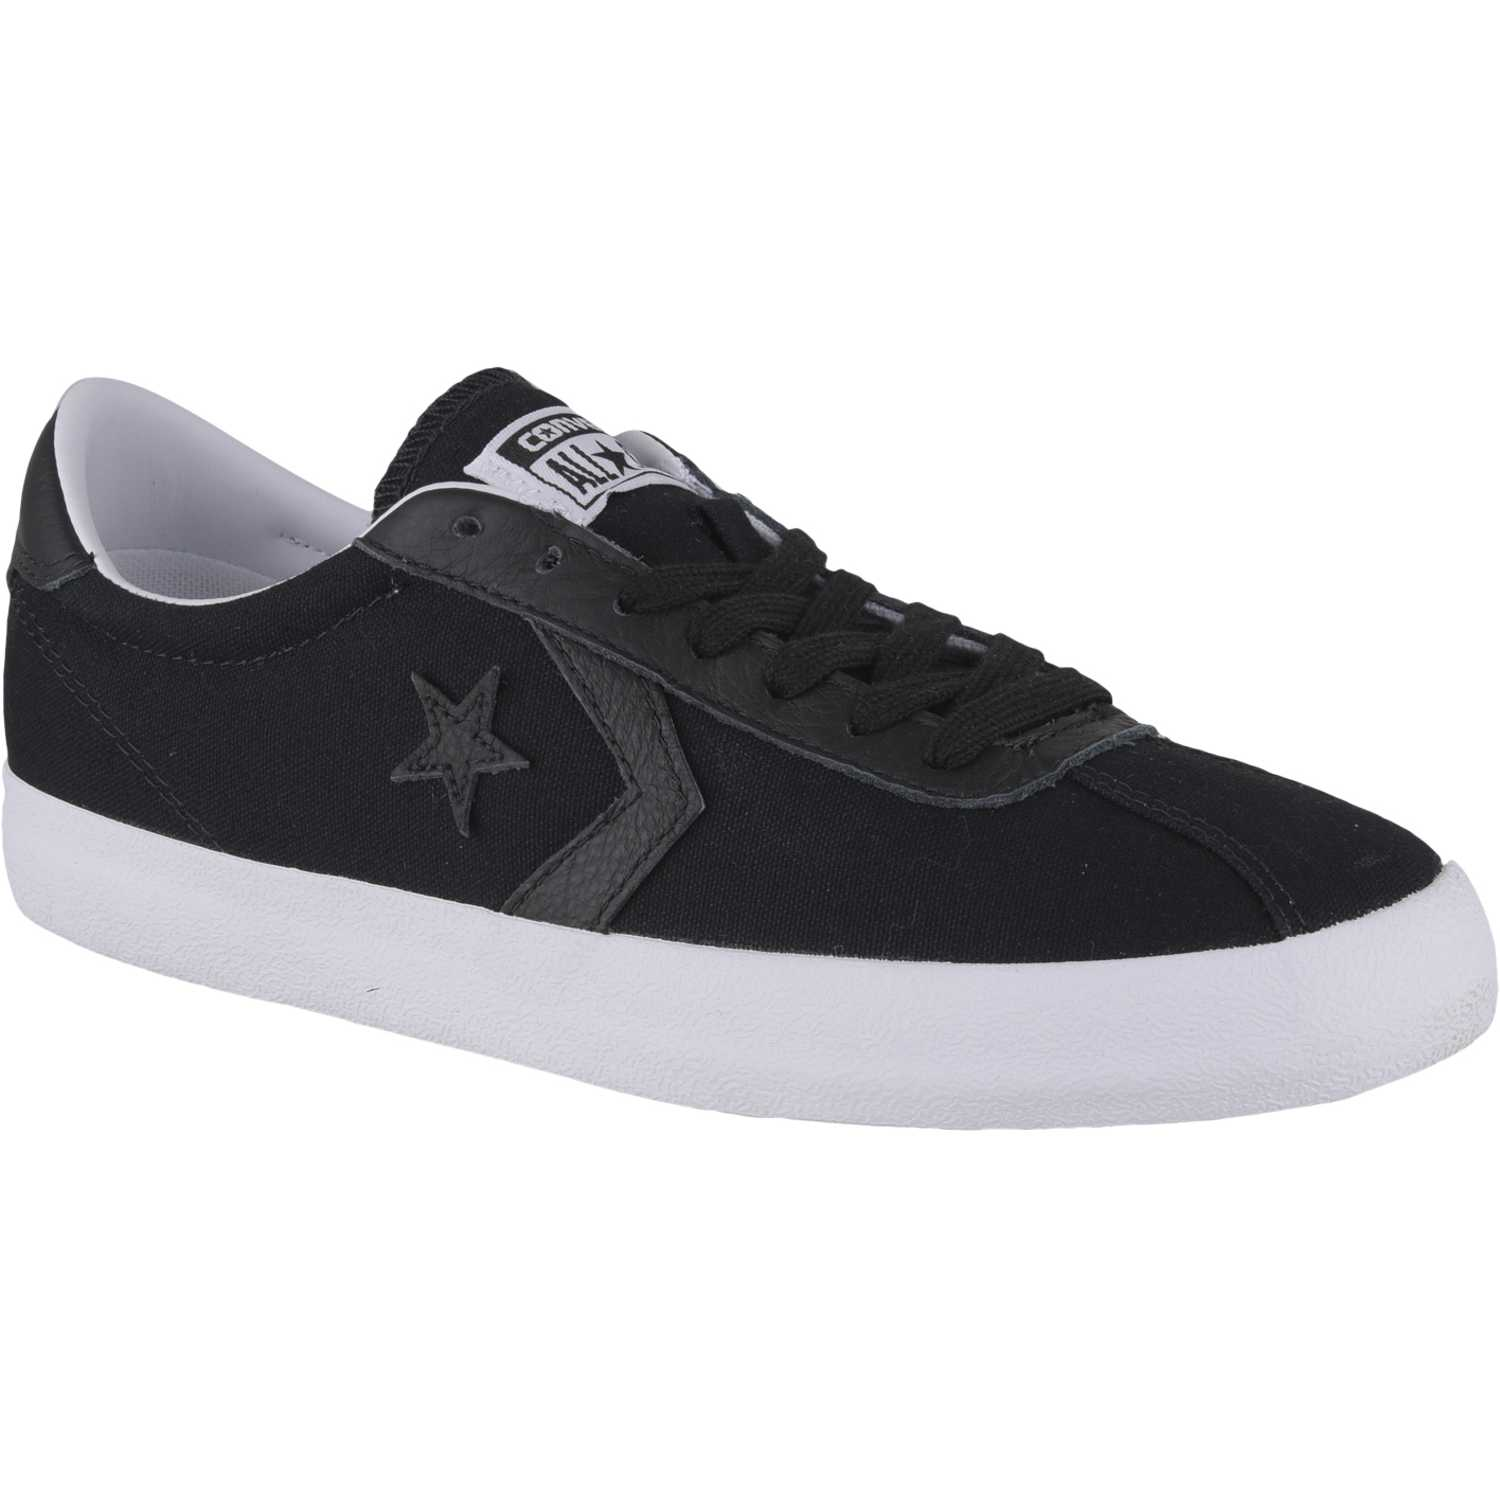 Converse star player canvas Negro / blanco Walking